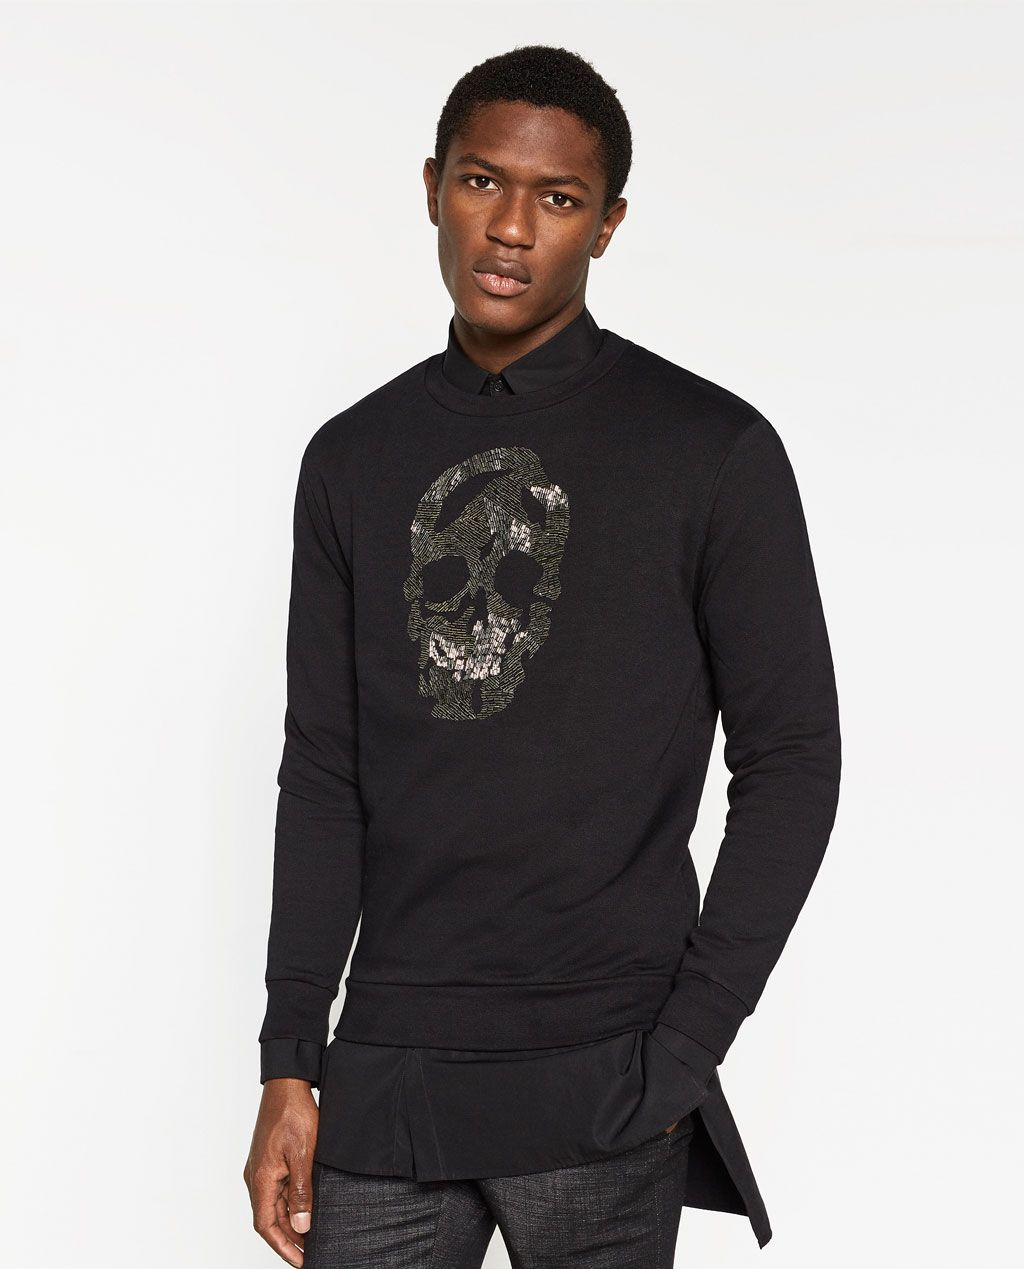 bb9a1a01 ZARA - MAN - SKULL SWEATSHIRT | Clothes and Accessories - For man